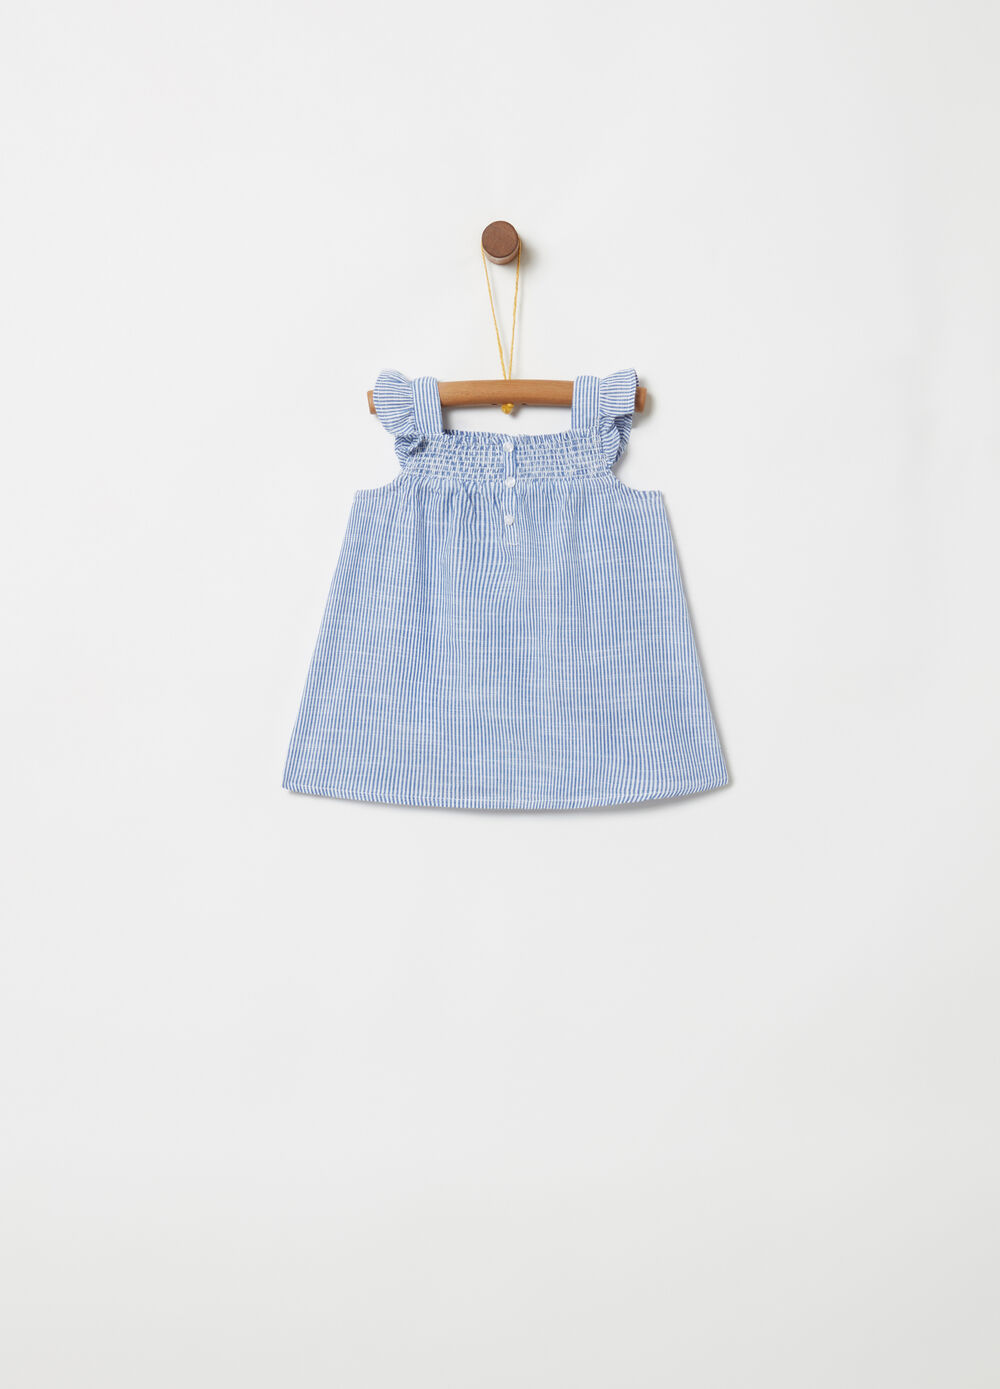 Yarn-dyed cotton shirt with stripe and flounce